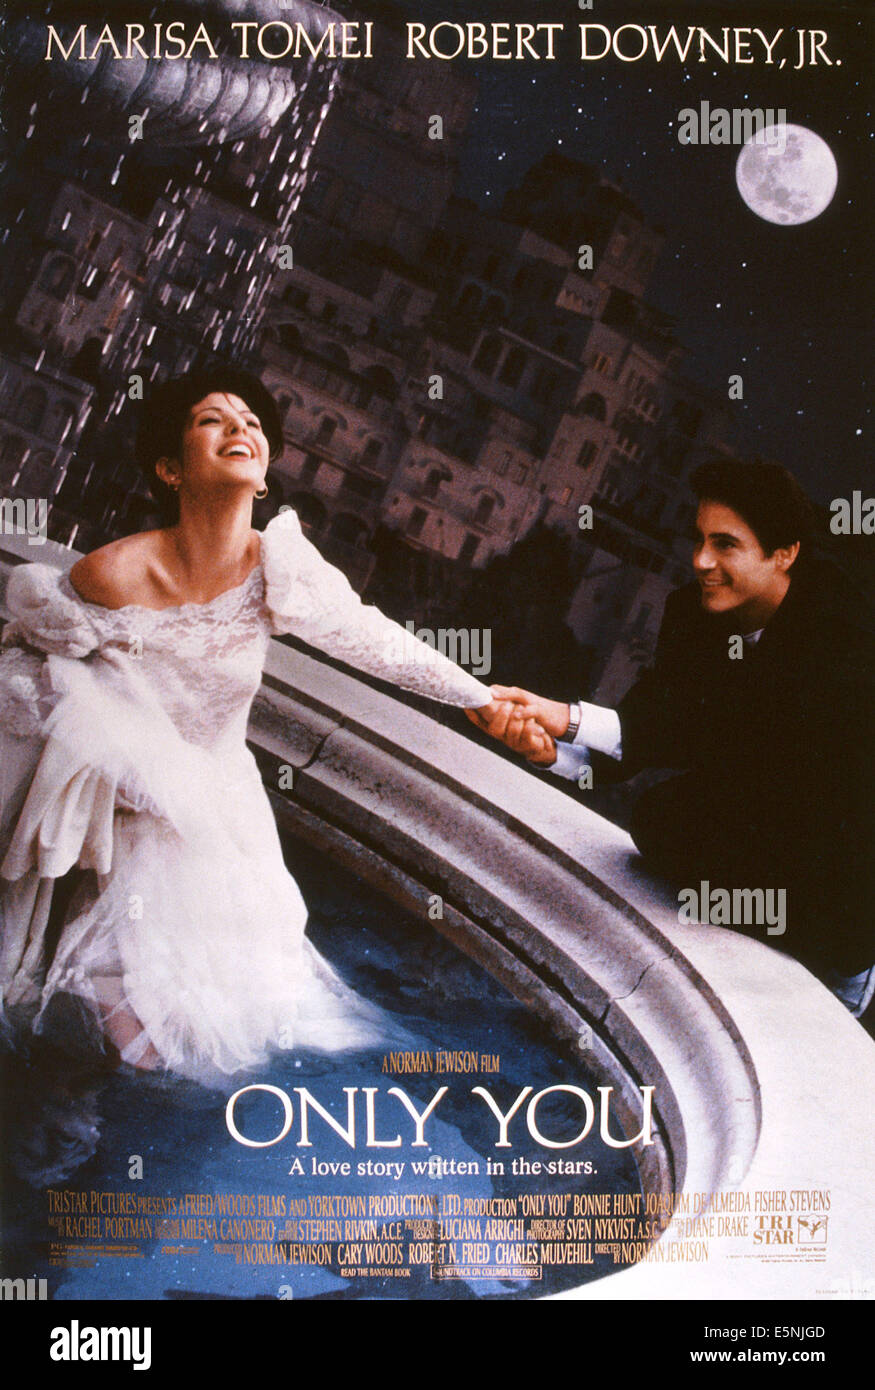 ONLY YOU, US poster, from left: Marisa Tomei, Robert Downey Jr., 1994, © TriStar/courtesy Everett Collection - Stock Image